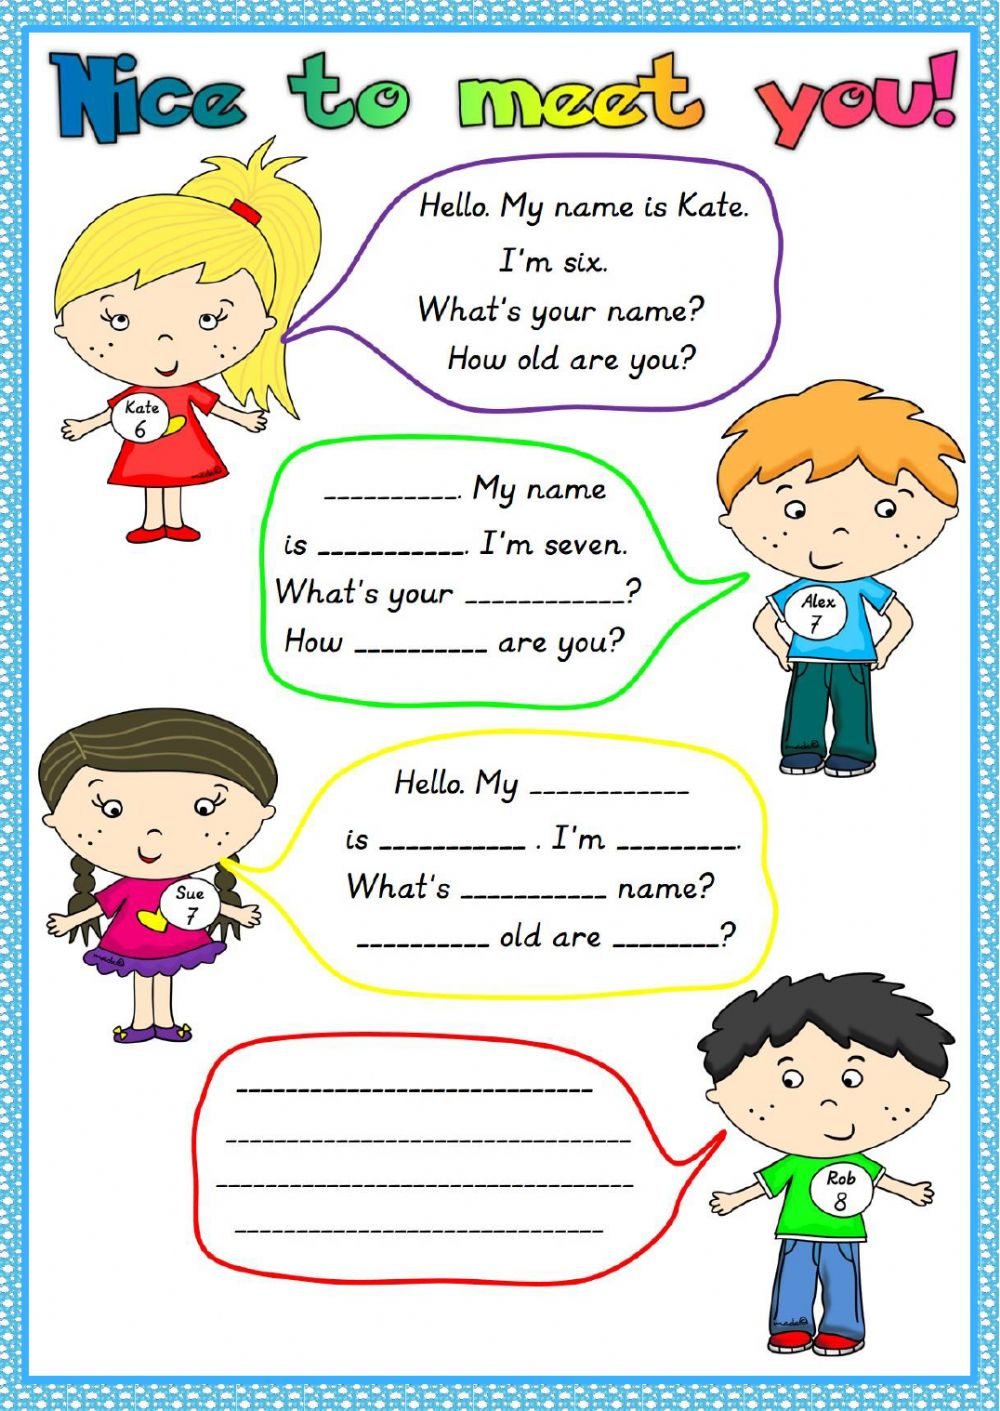 Nice to meet you - Interactive worksheet